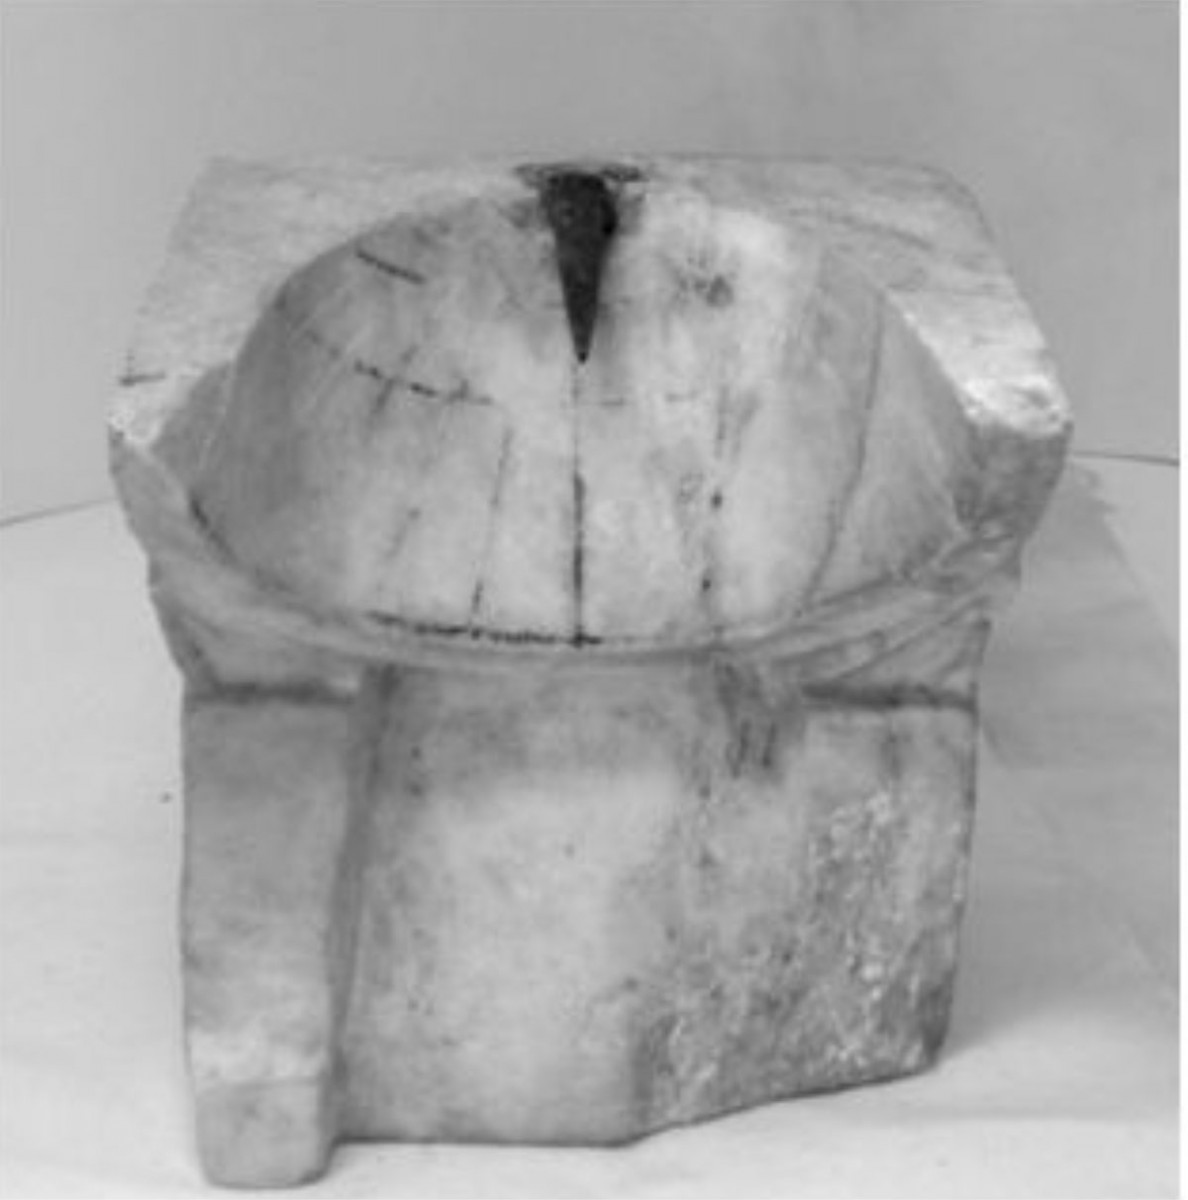 Fig. 2. Conical sundial in the Archaeological Museum of Piraeus (index number ΜΠ 1131). (Source: Panou 2016: 246).